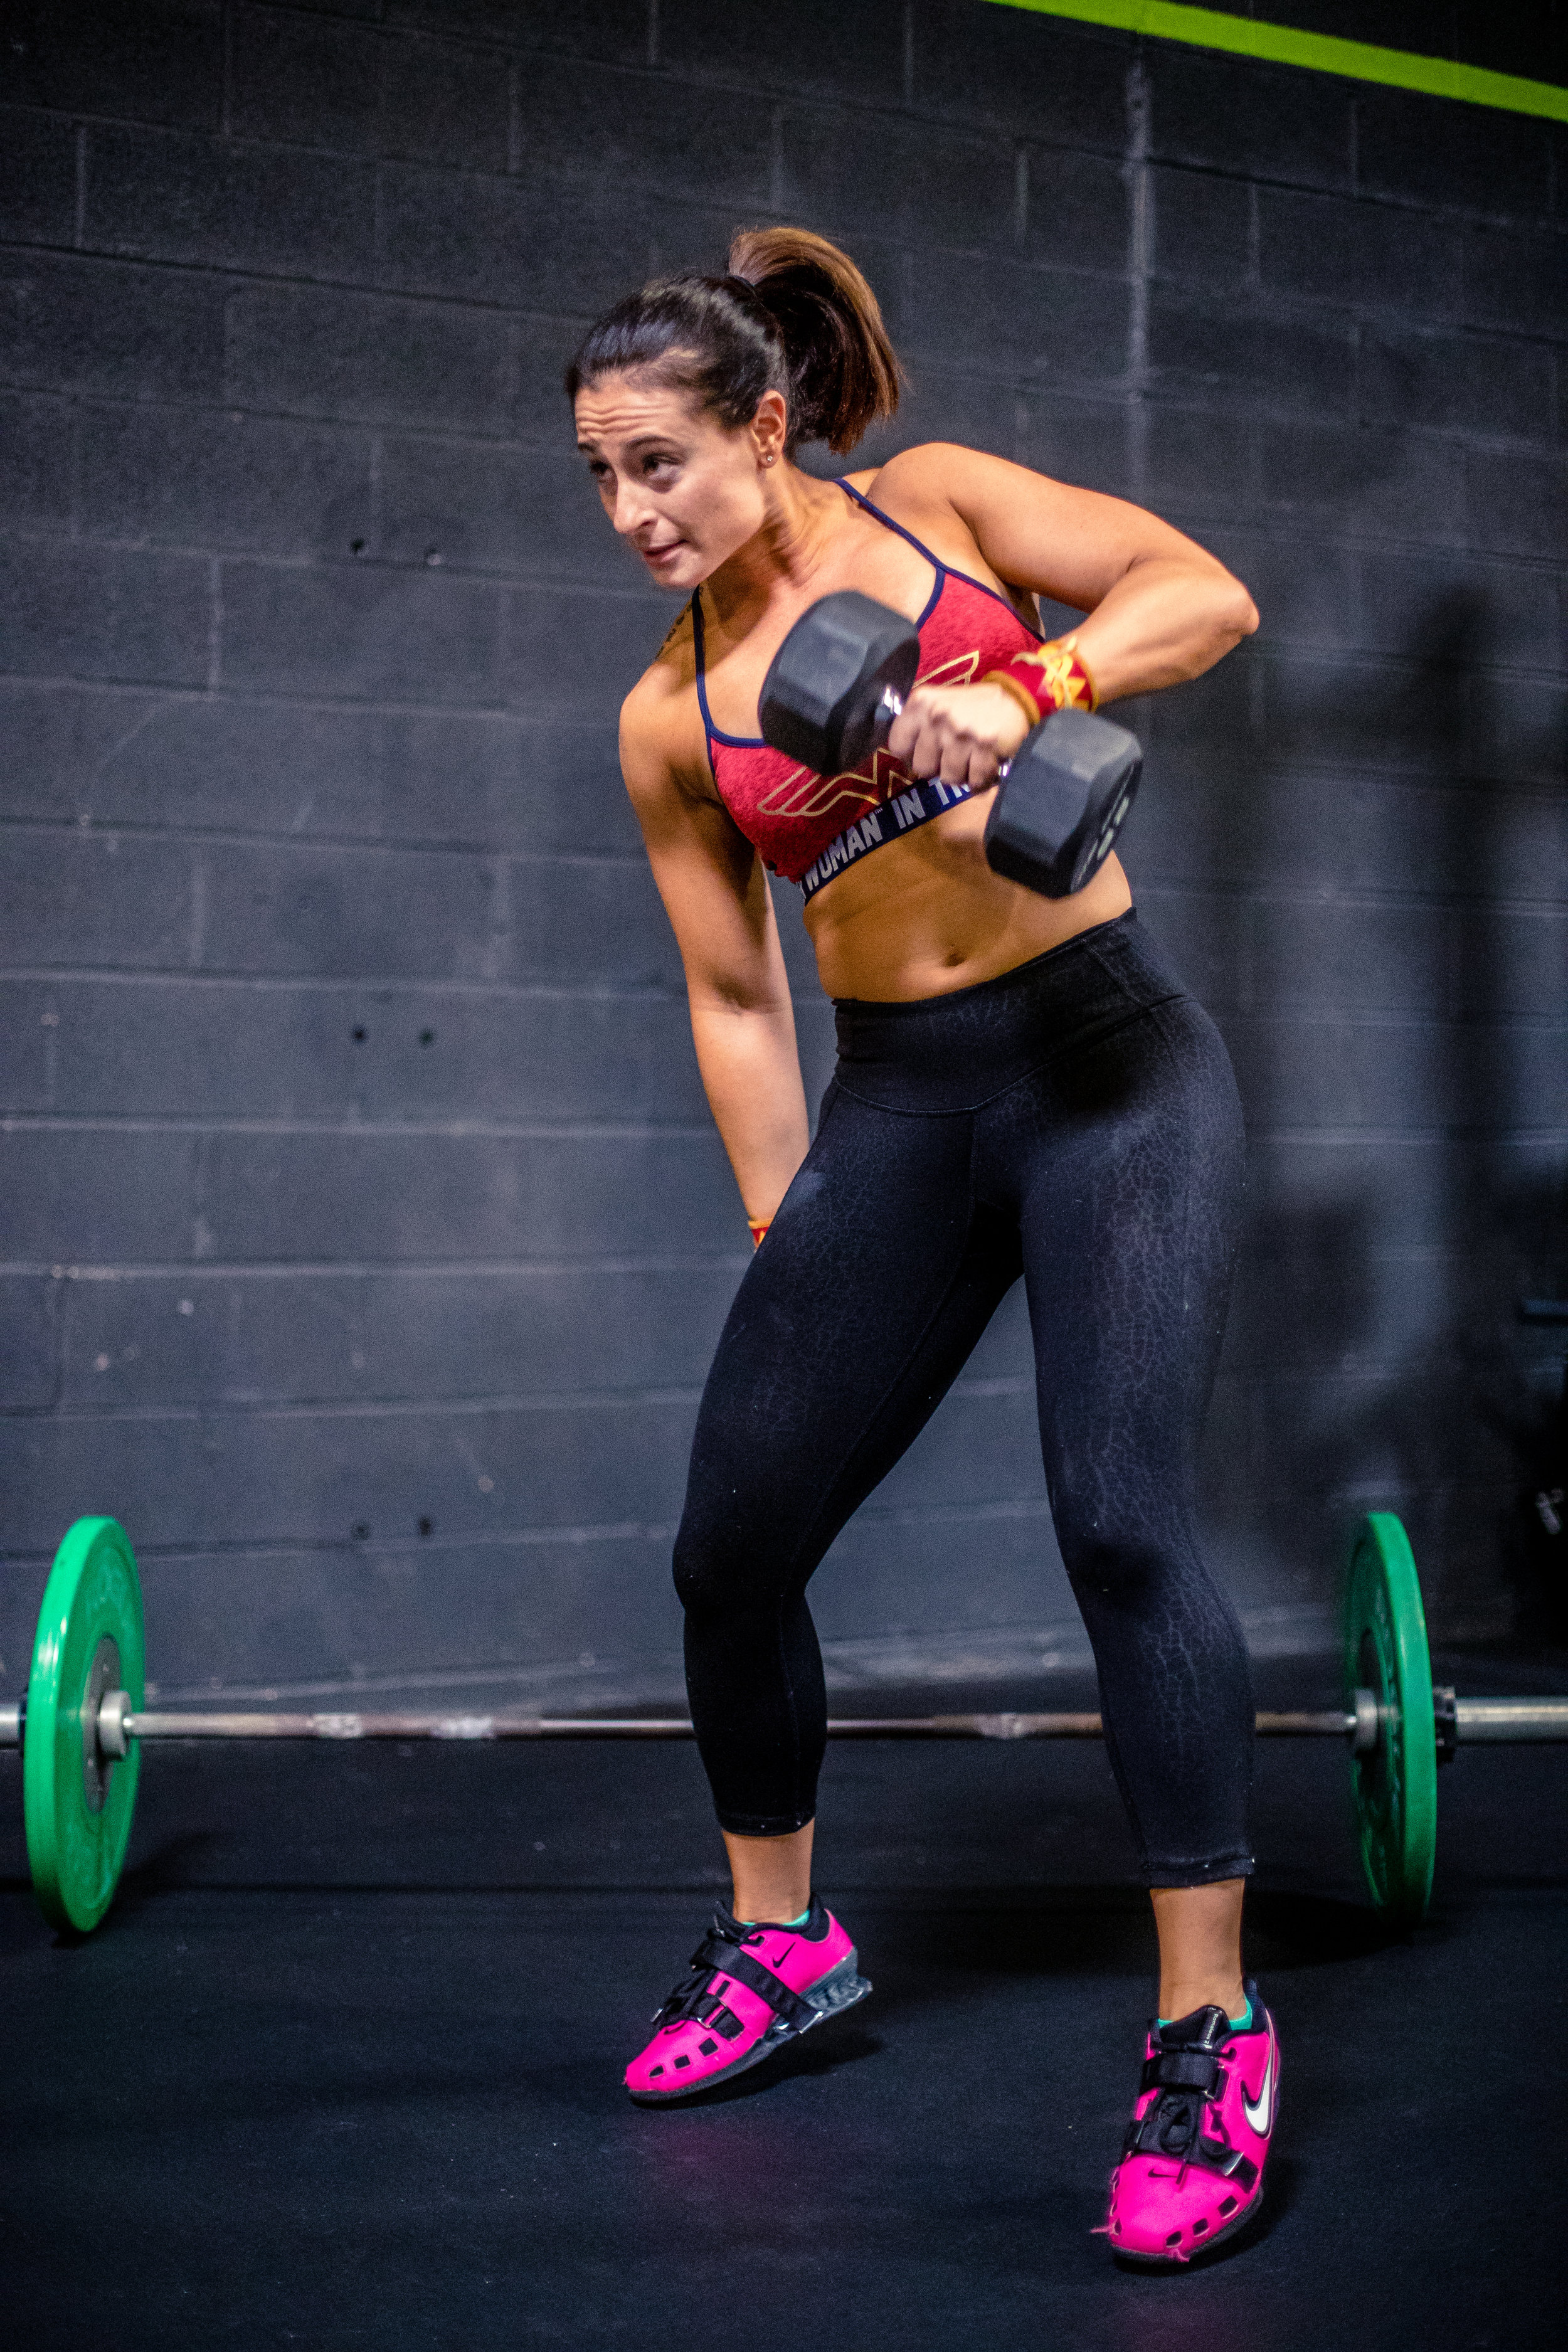 crossfit-hair-action-shots-everyday-lifters.jpg